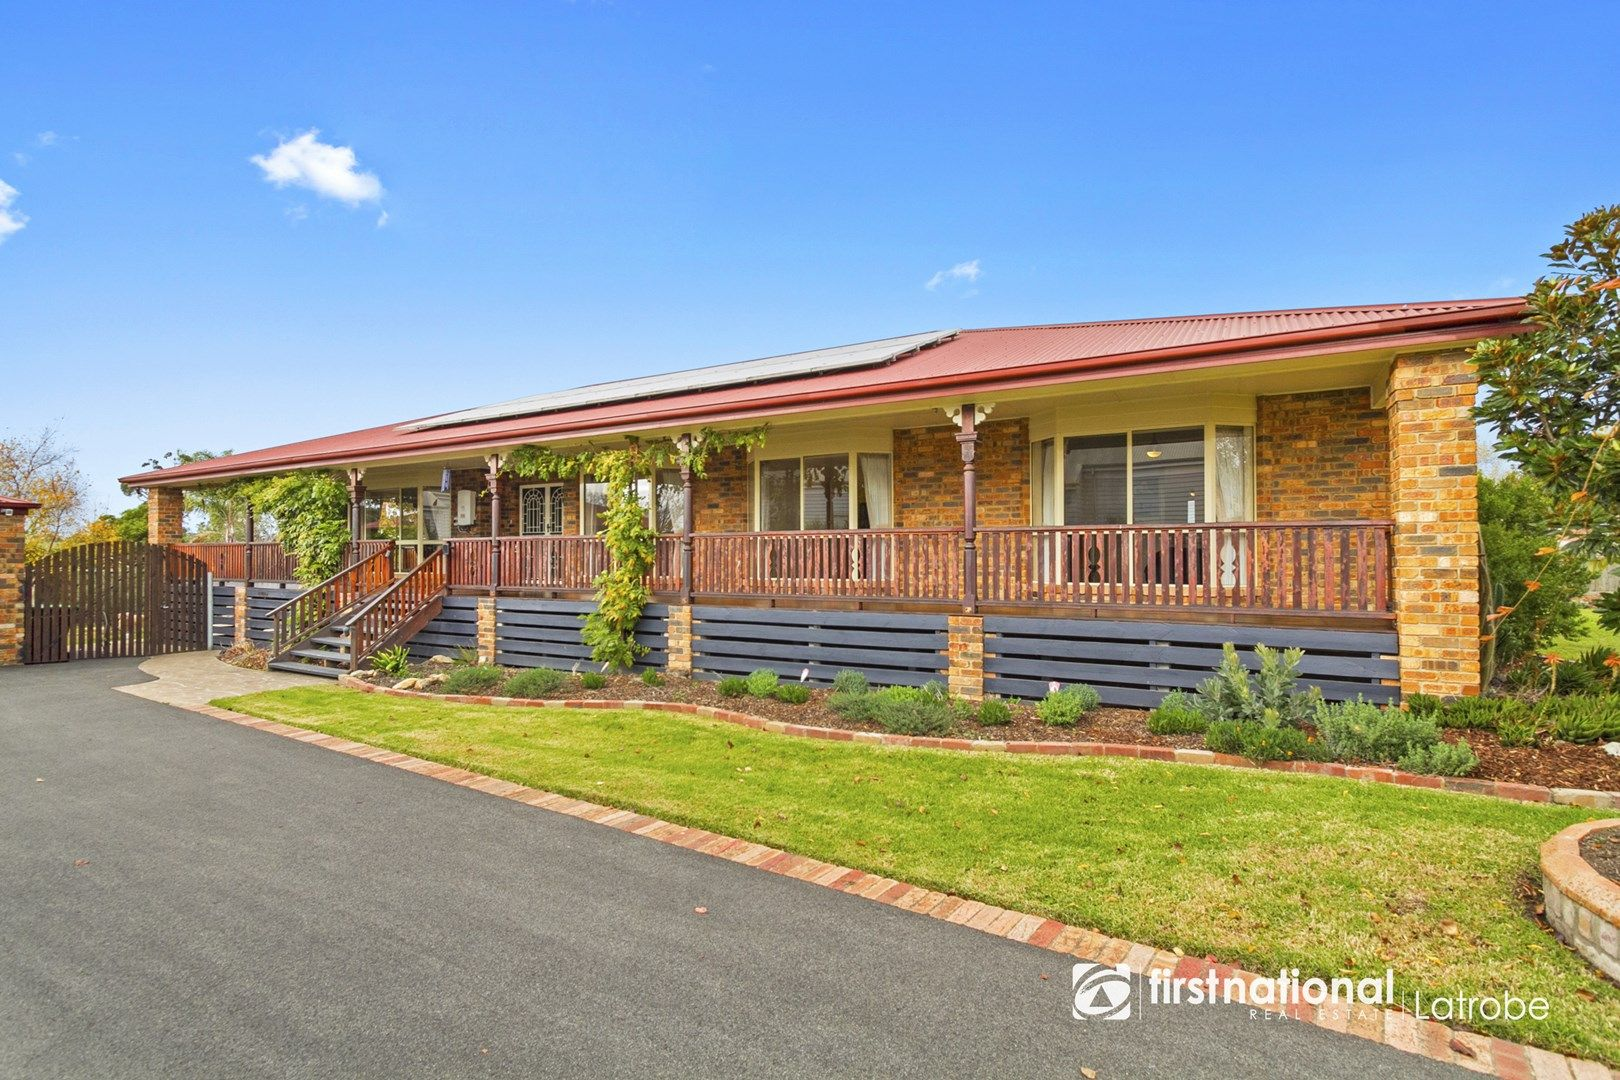 23 Fairway Drive, Traralgon VIC 3844, Image 0